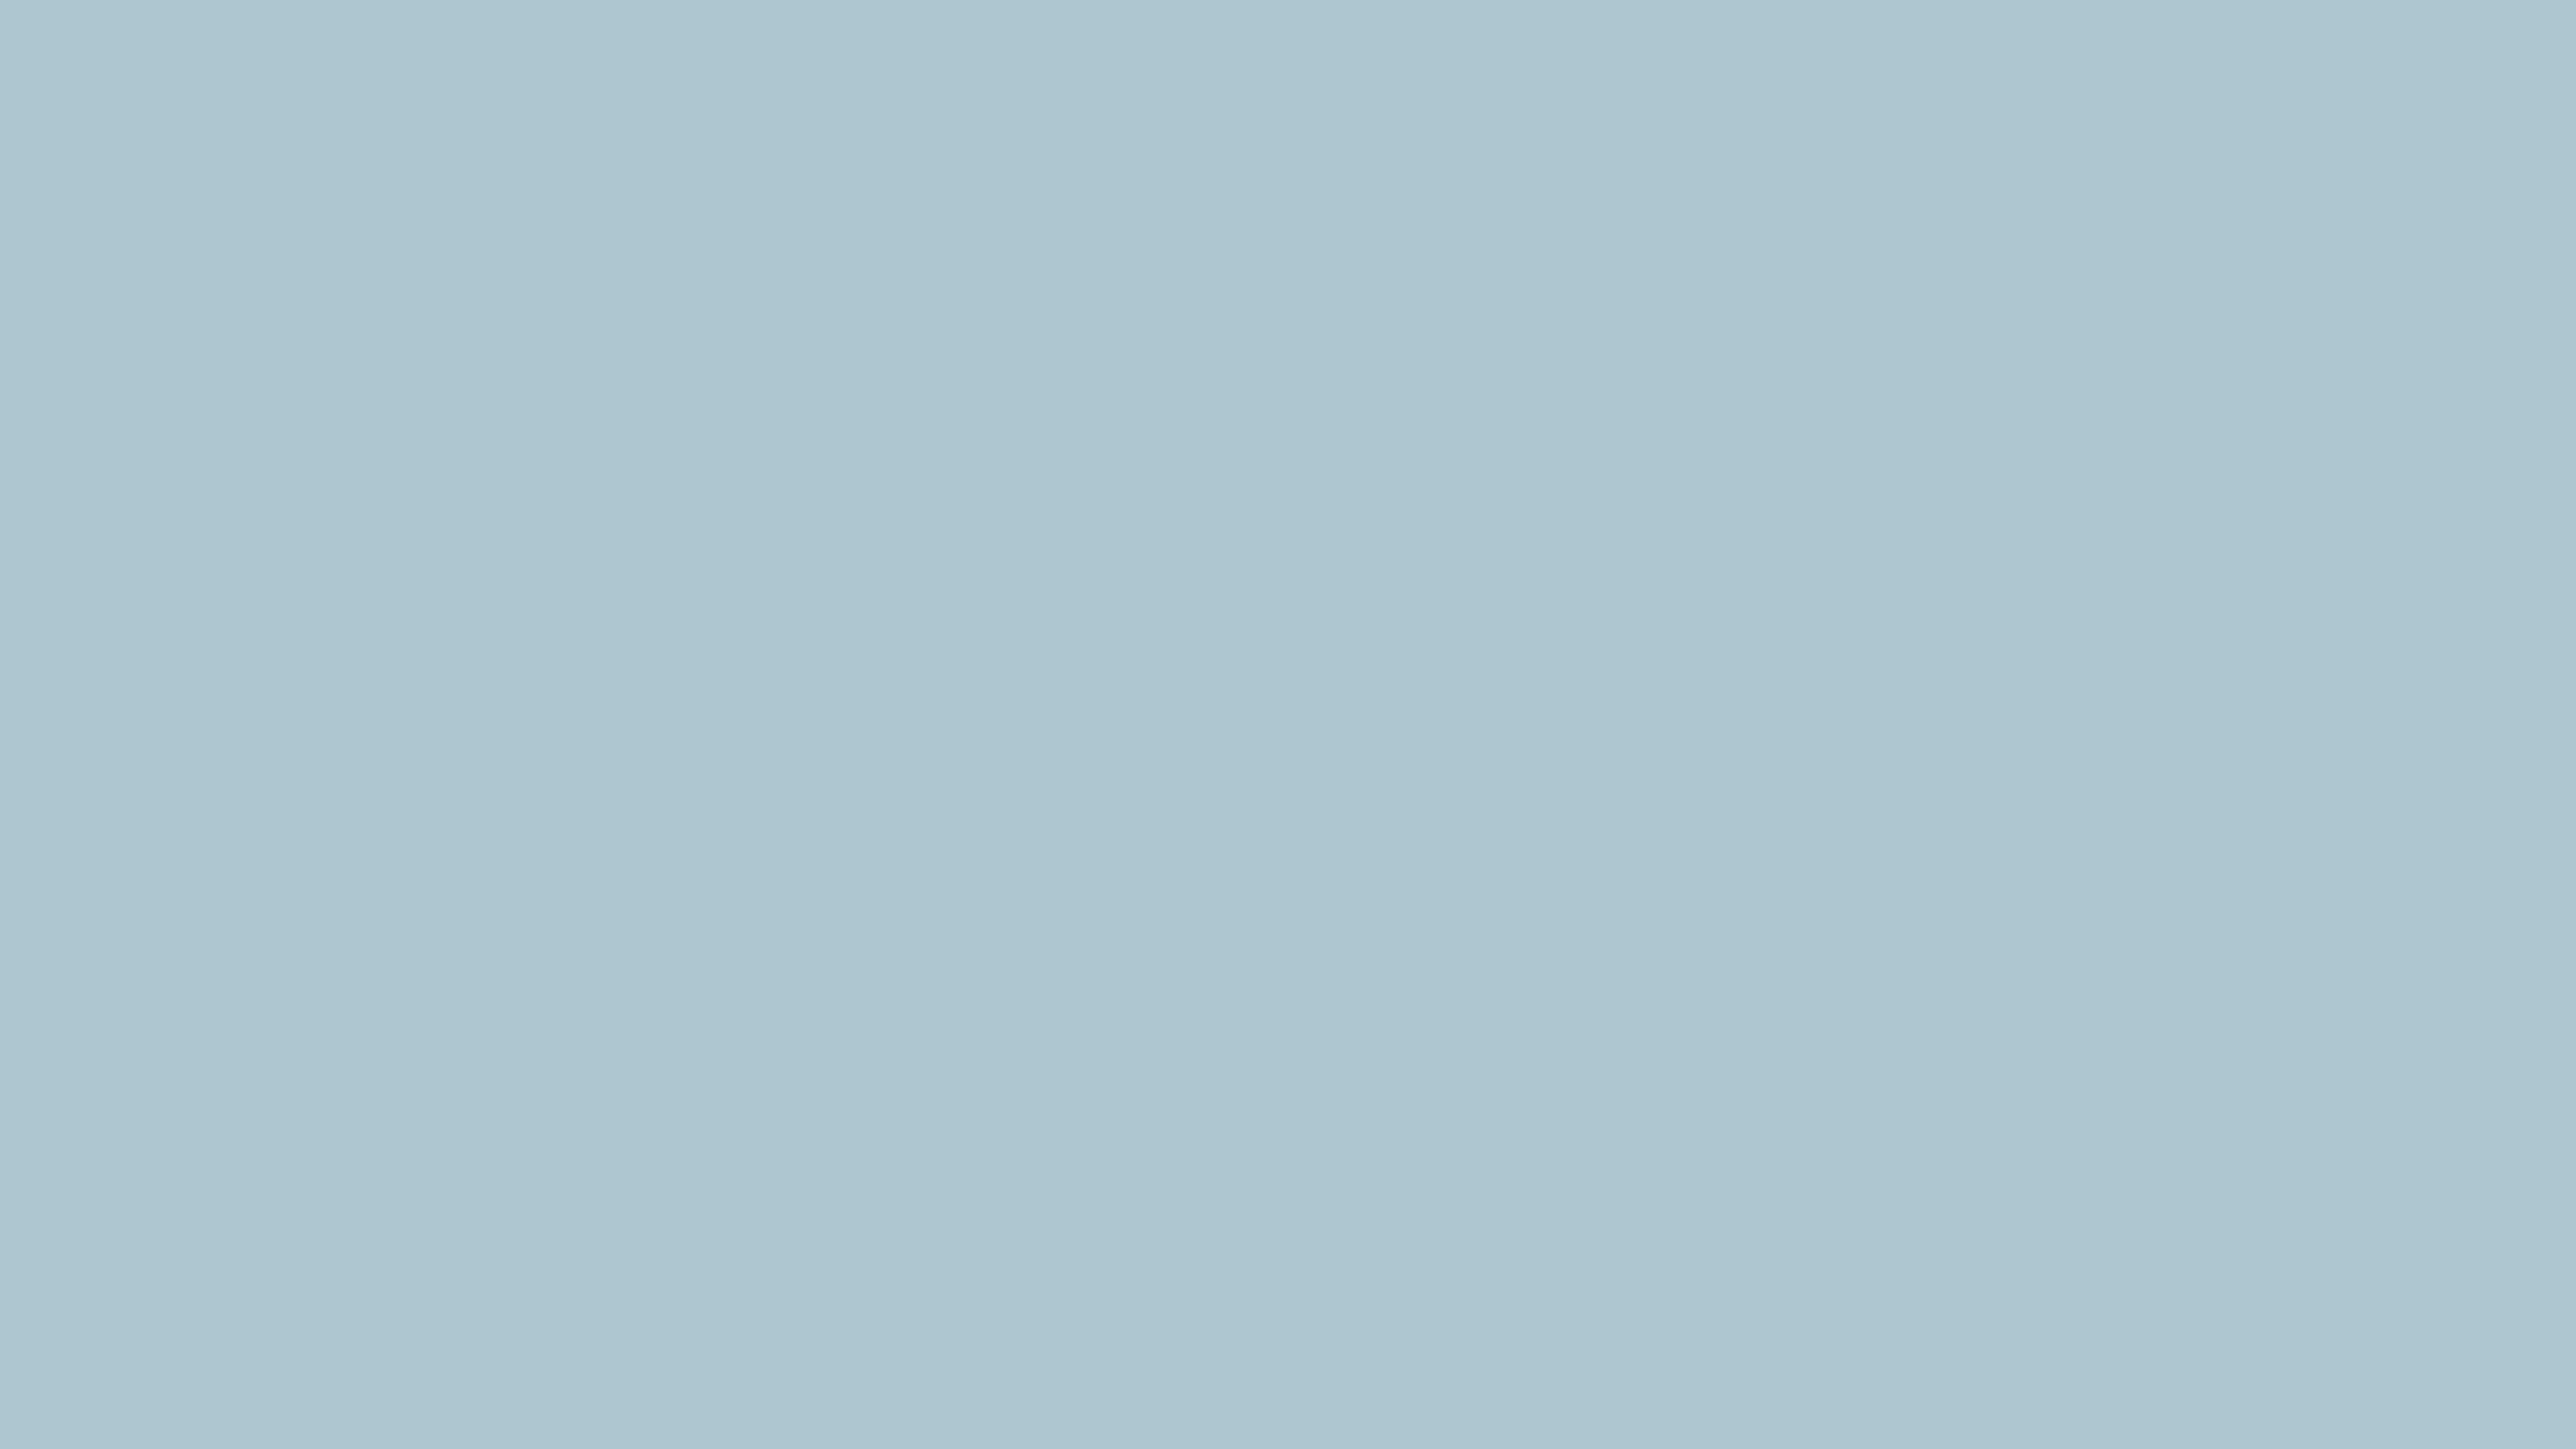 5120x2880 Pastel Blue Solid Color Background